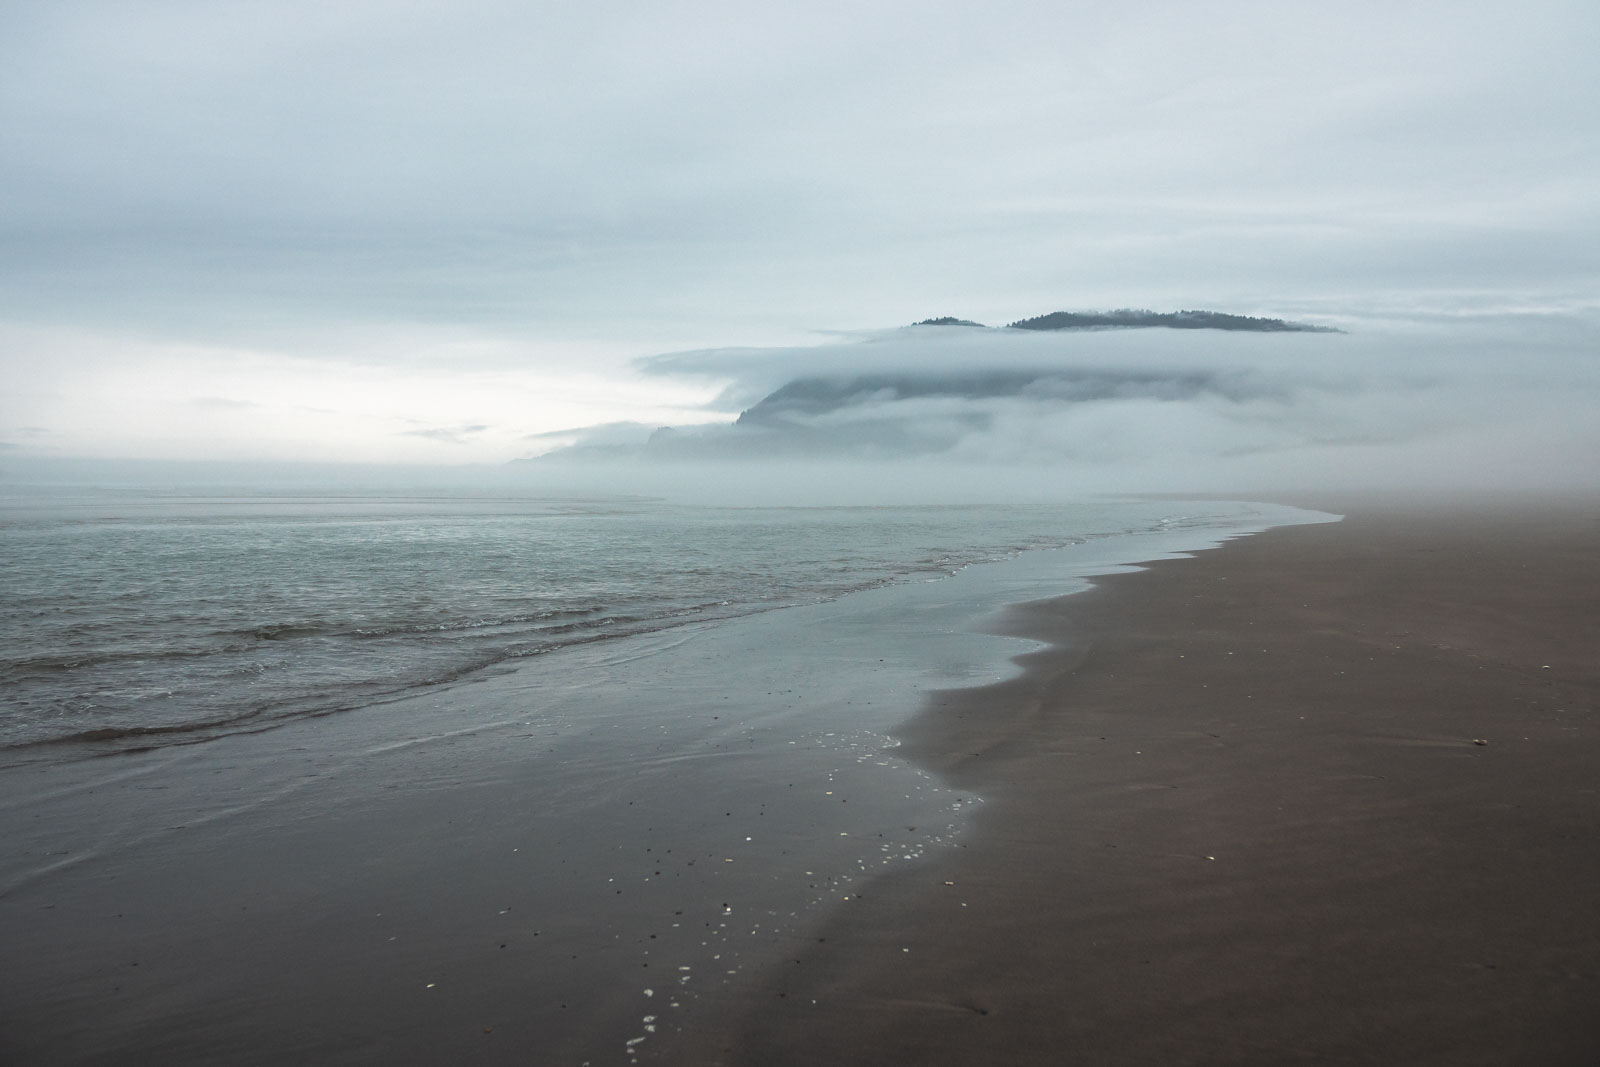 Beach and ocean view at Nehalem Bay State Park